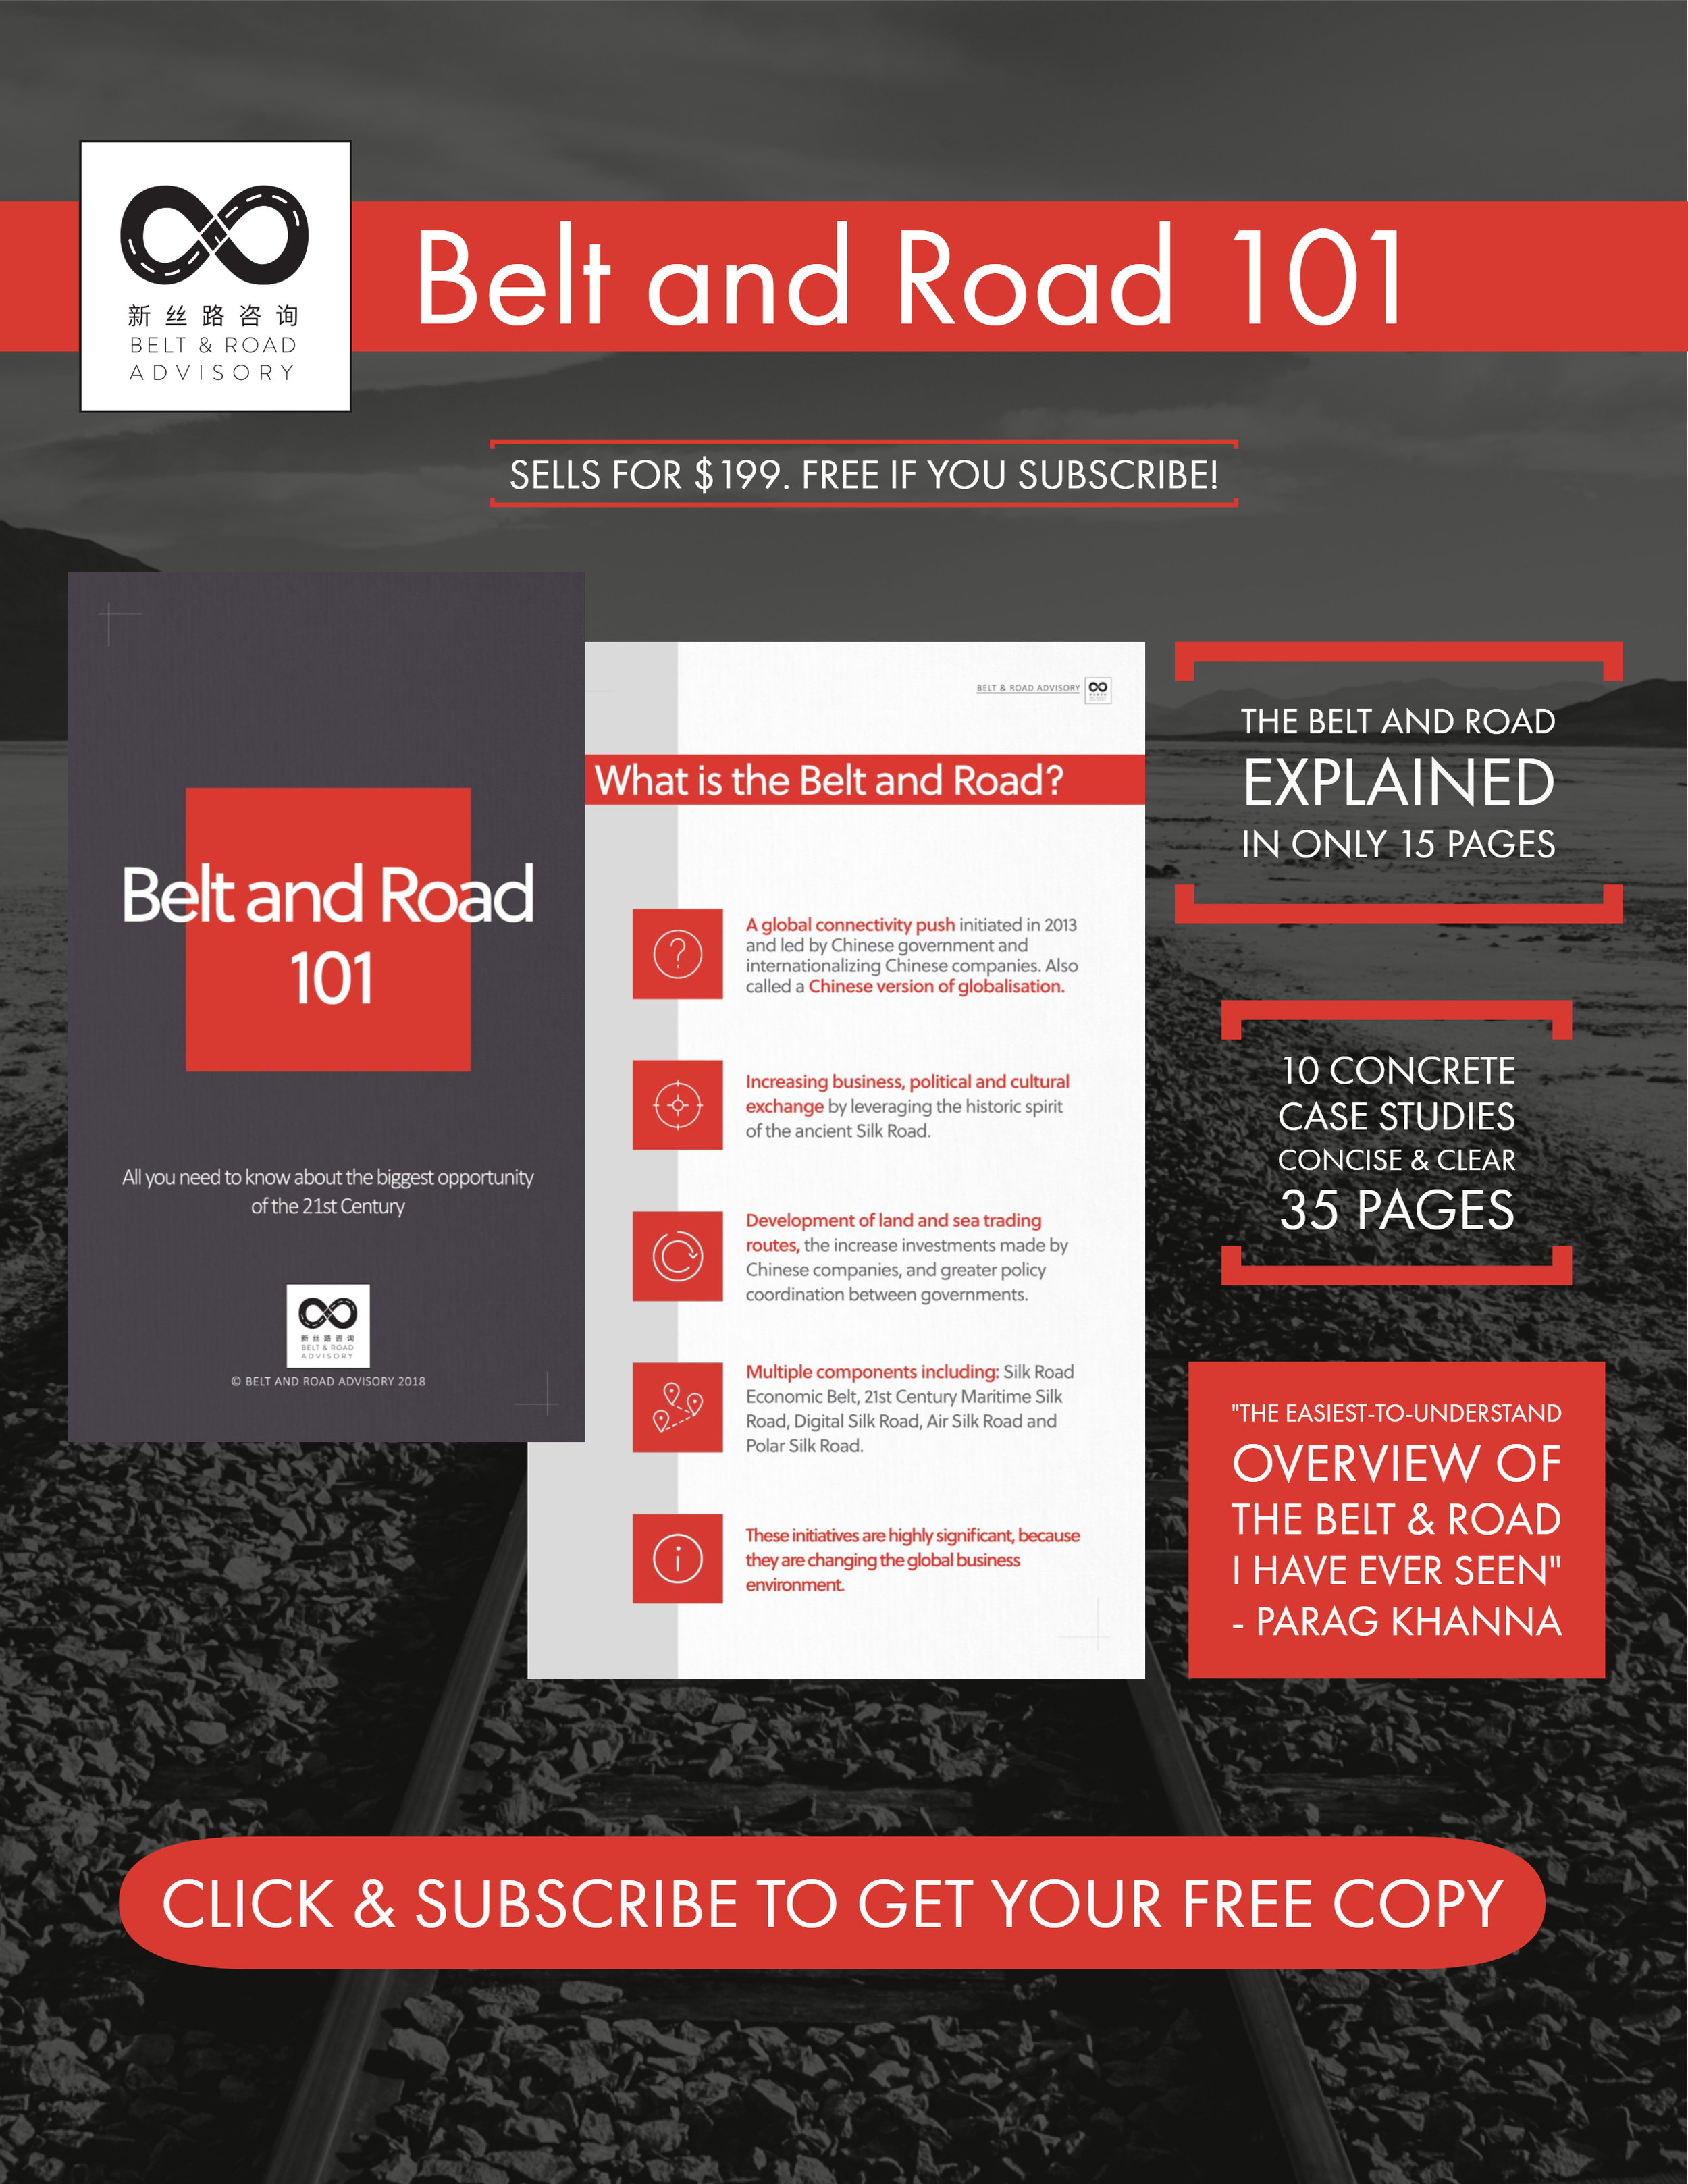 All you need to know about the biggest opportunity of the 21st century - Never Before has the Belt and Road been explained in 15 easy to understand pages!With 10 detailed case studies and a total of 50 pages, this report is the most concise and easy to digest overview of the Belt and Road Initiative you can find.This training booklet seeks to help you and your company understand what the Belt and Road Initiative (BRI) is and how to tap into the opportunities it offers.Think of it as a concise and practical guide to the BRI that is free from political slogans and enables you to understand the initiative; facilitating your engagement with it in a way that benefits you and your company.